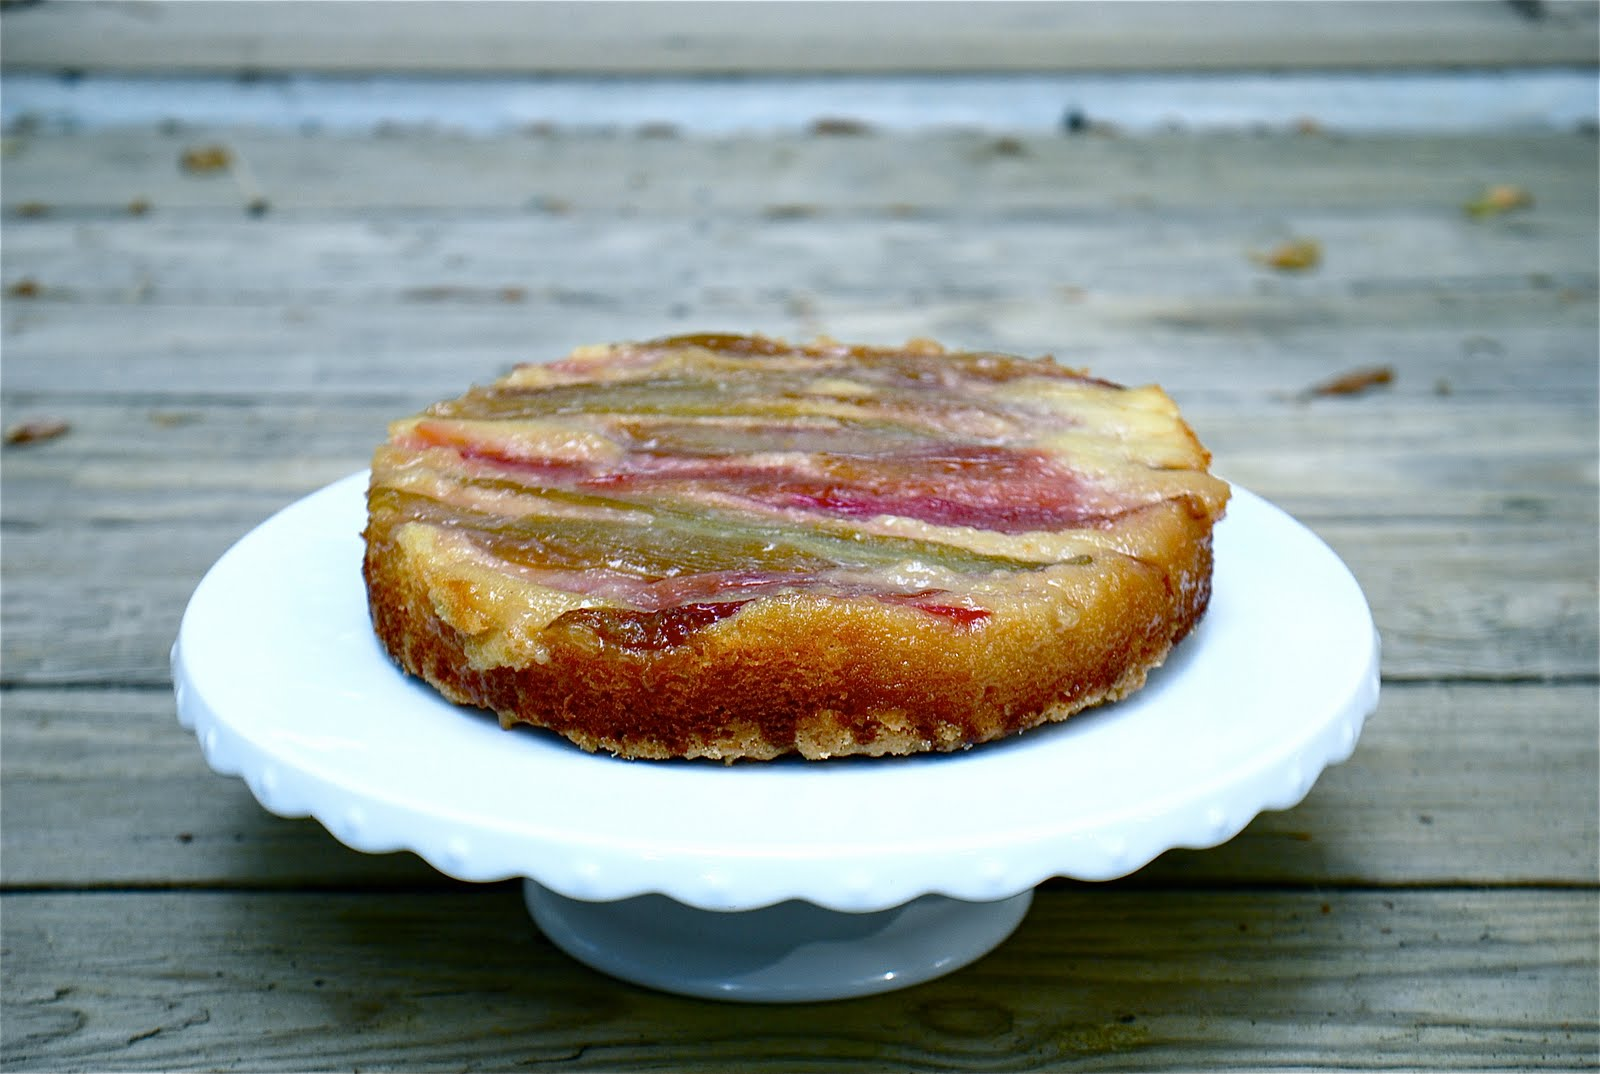 Blue Ridge Baker Rhubarb Upside Down Cake For My Dads Birthday